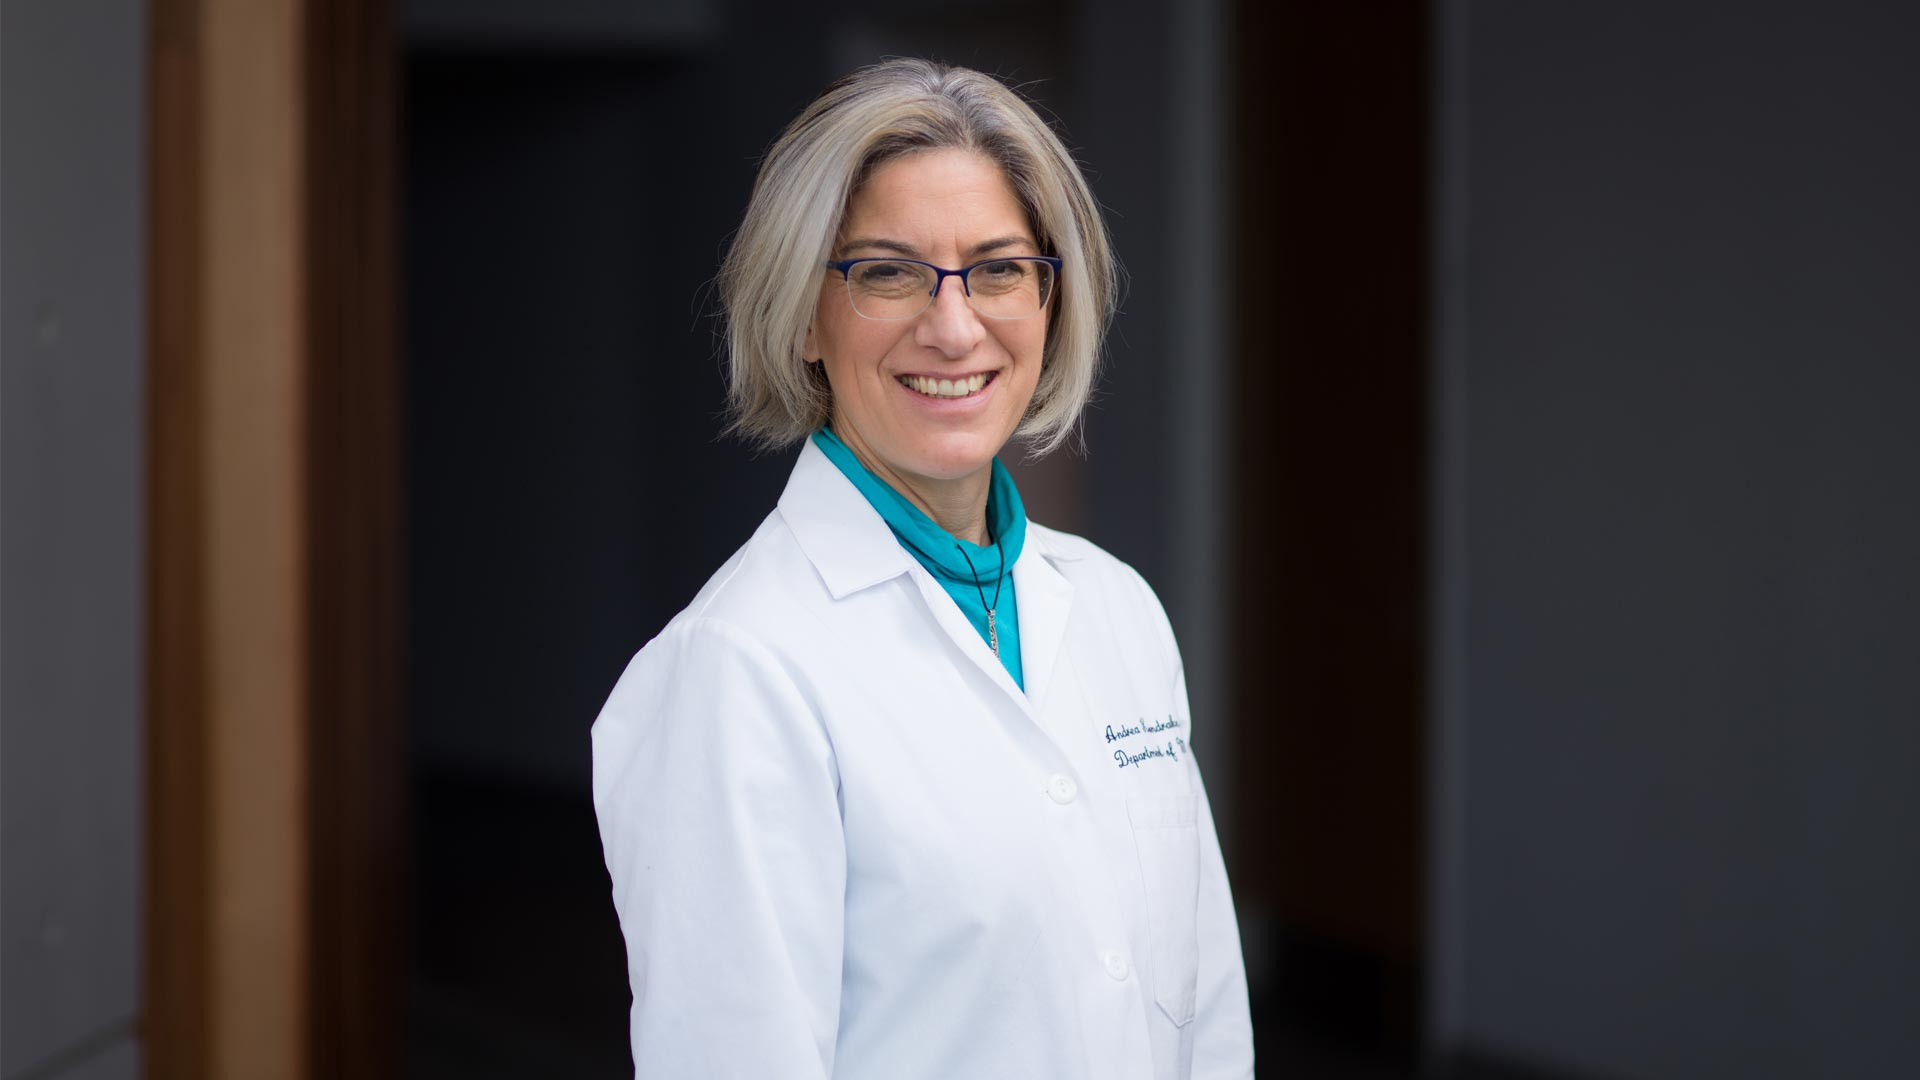 Andrea Kondracke, M.D., Named Director of New Division of Psychiatry and Medicine